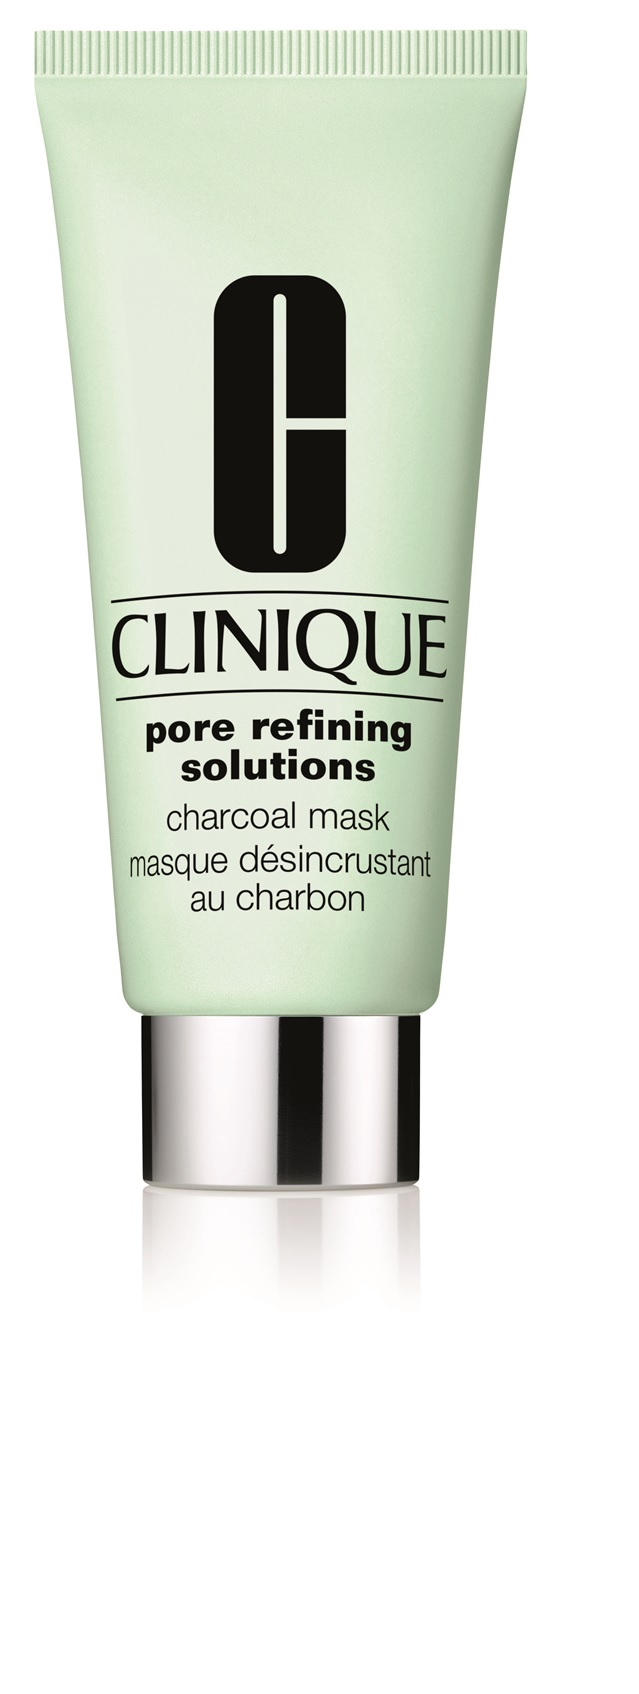 Clinique unmasks new Charcoal treatment